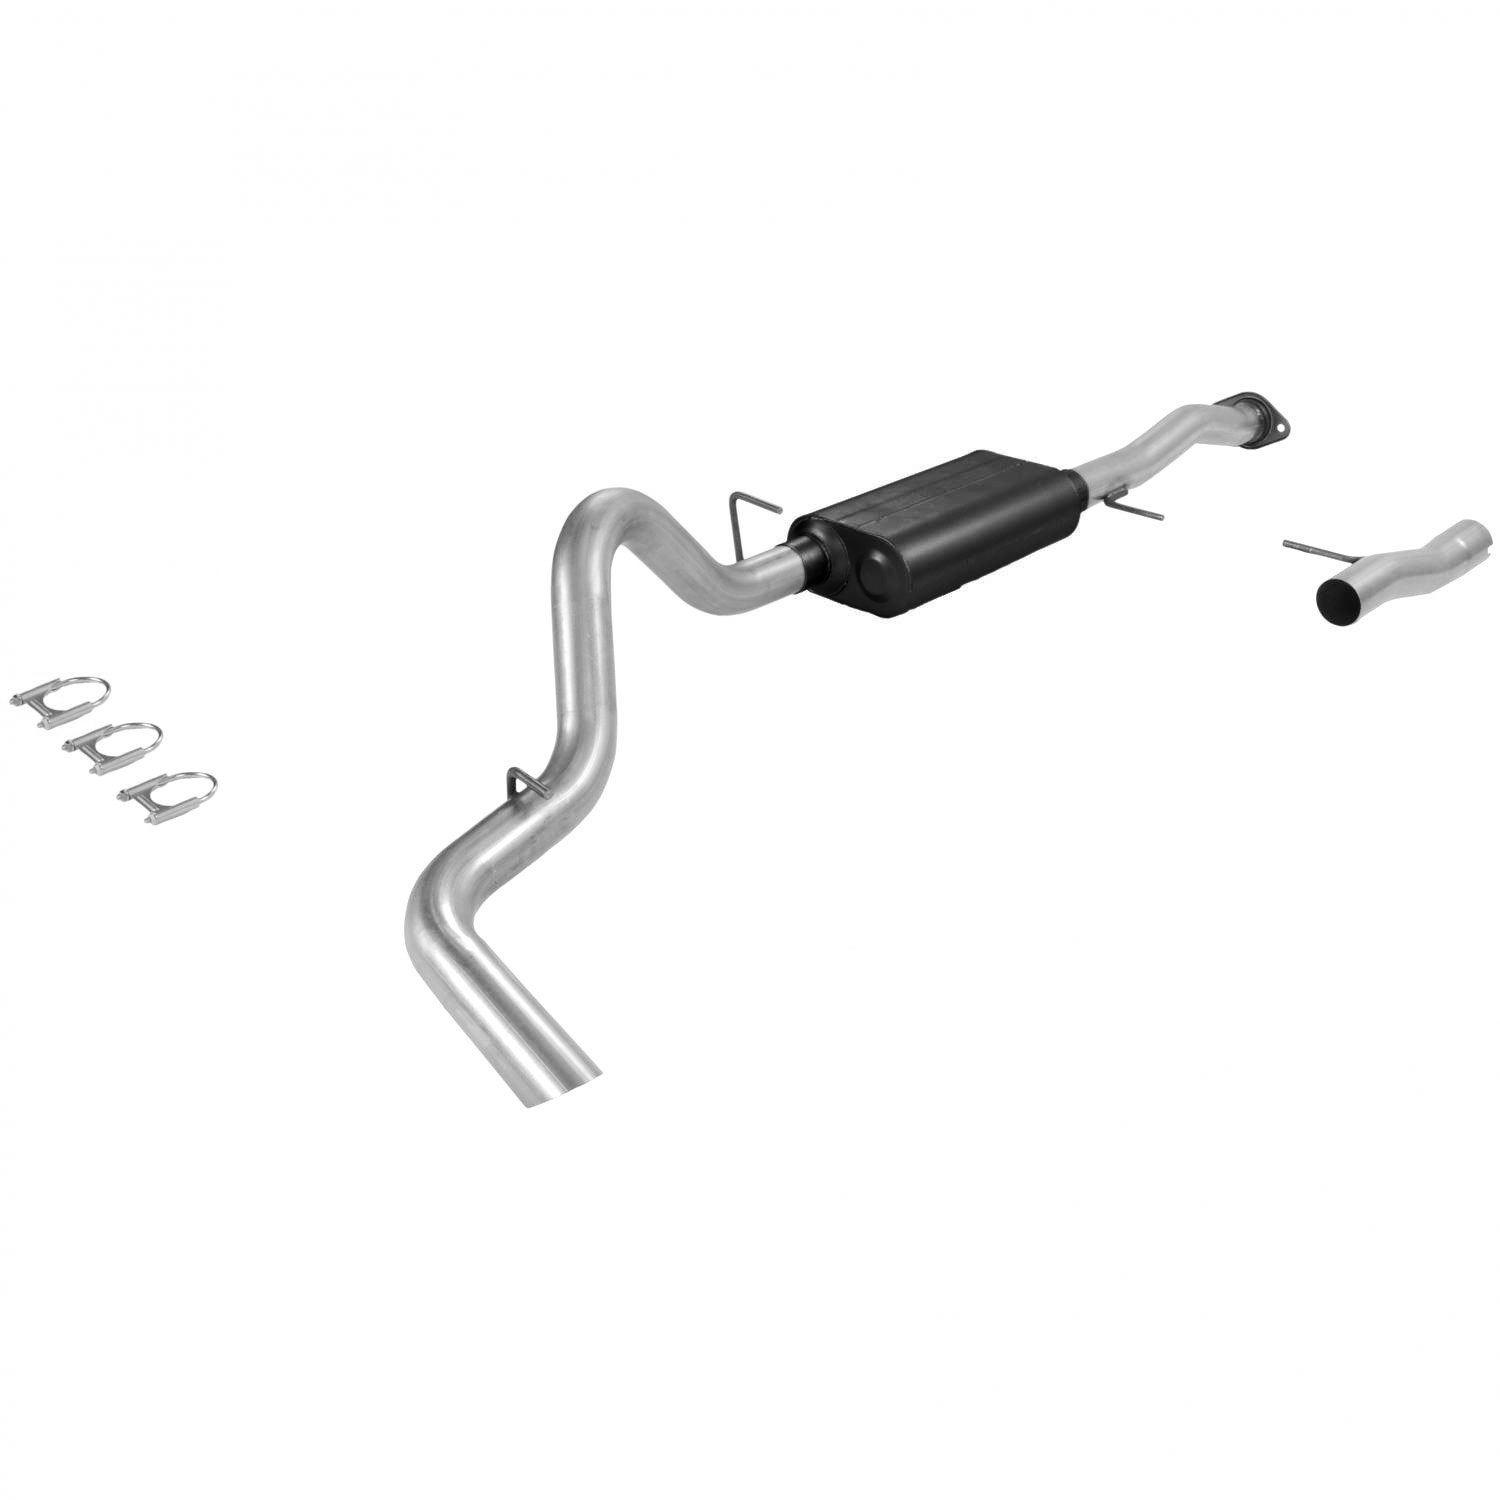 Flowmaster Force Ii Exhaust System 87 91 Chevrolet Blazer